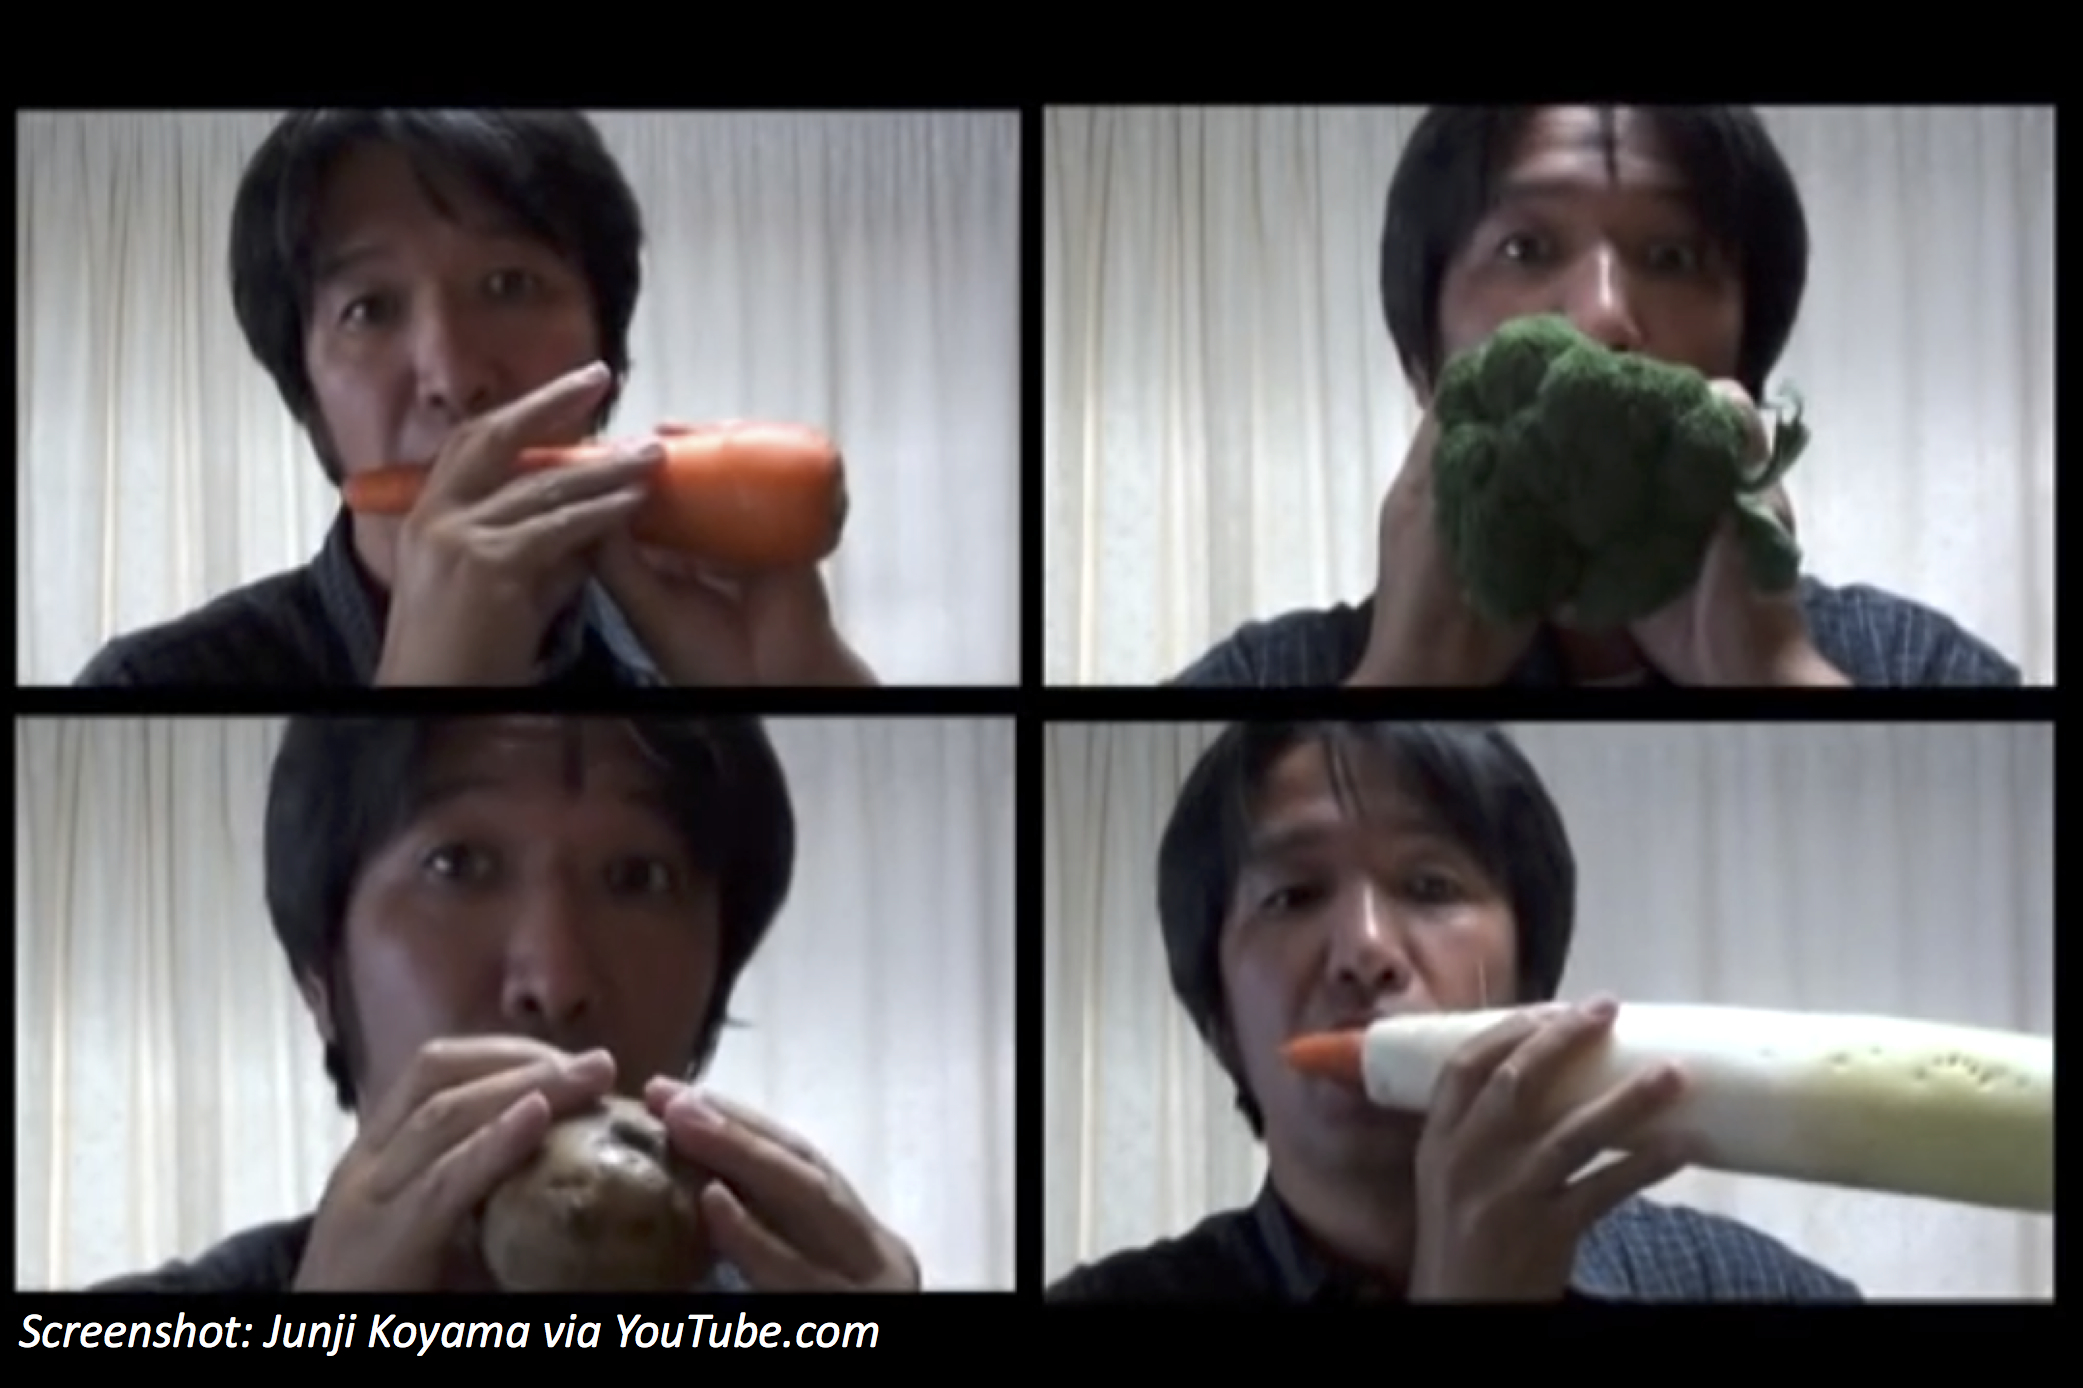 Play That Carrot!